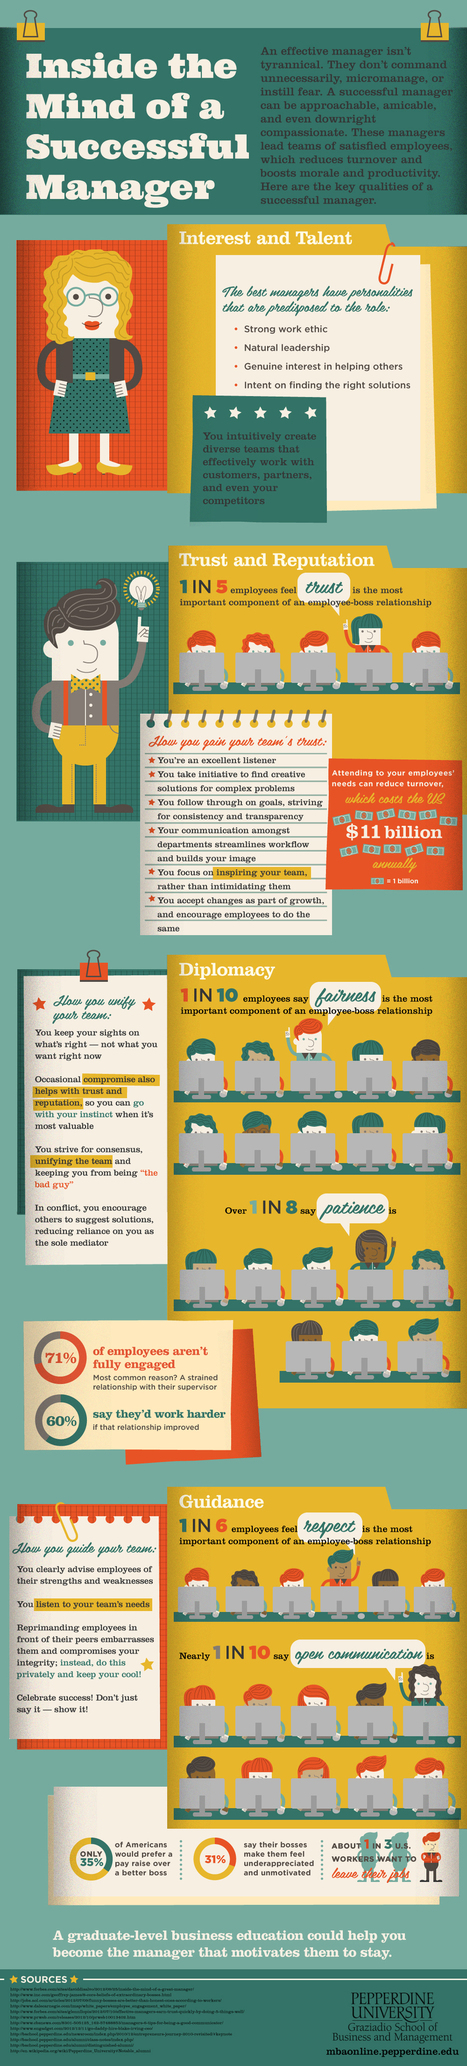 (Infographic) What Makes a Successful Manager? | A New Society, a new education! | Scoop.it